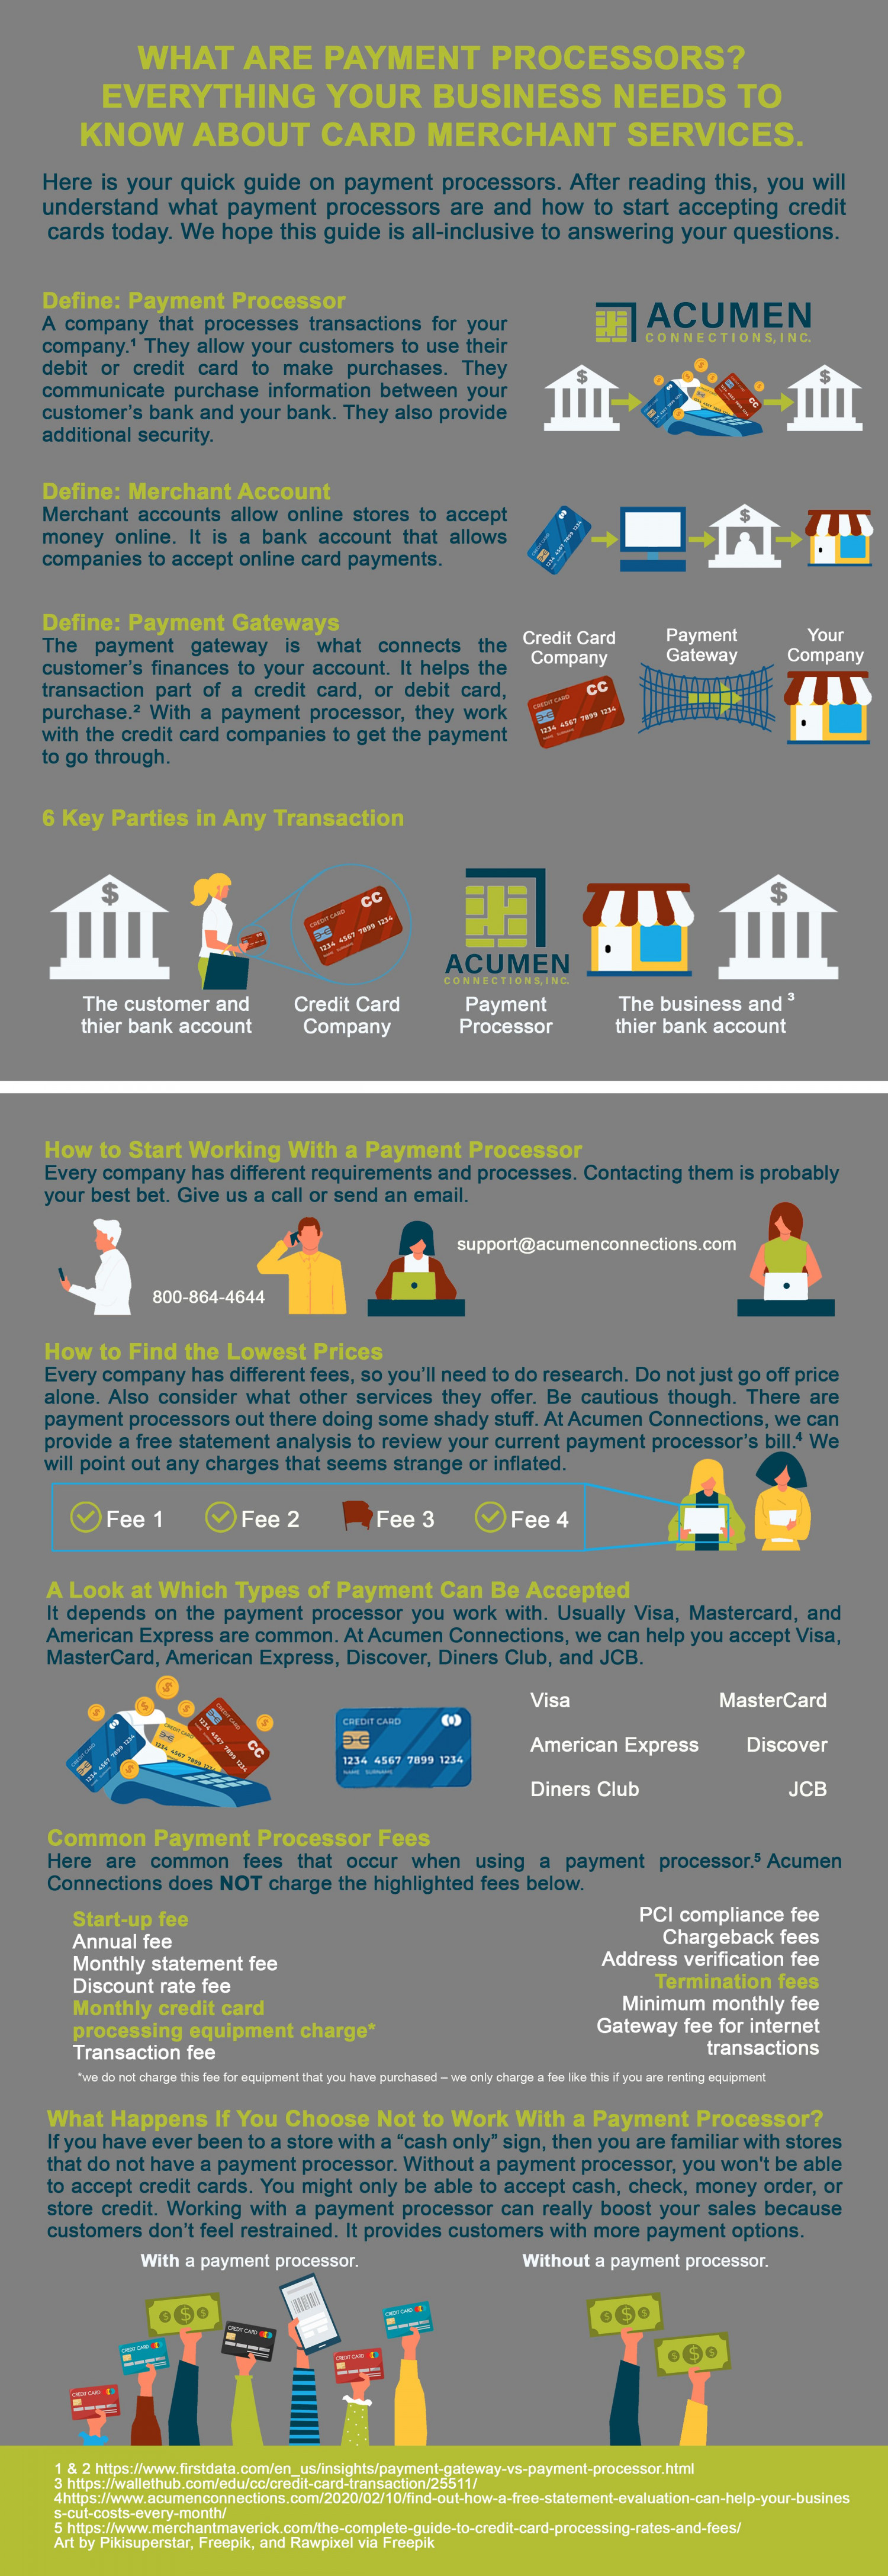 What are Payment Processors? Everything Your Business Needs to Know About Card Merchant Accounts Infographic